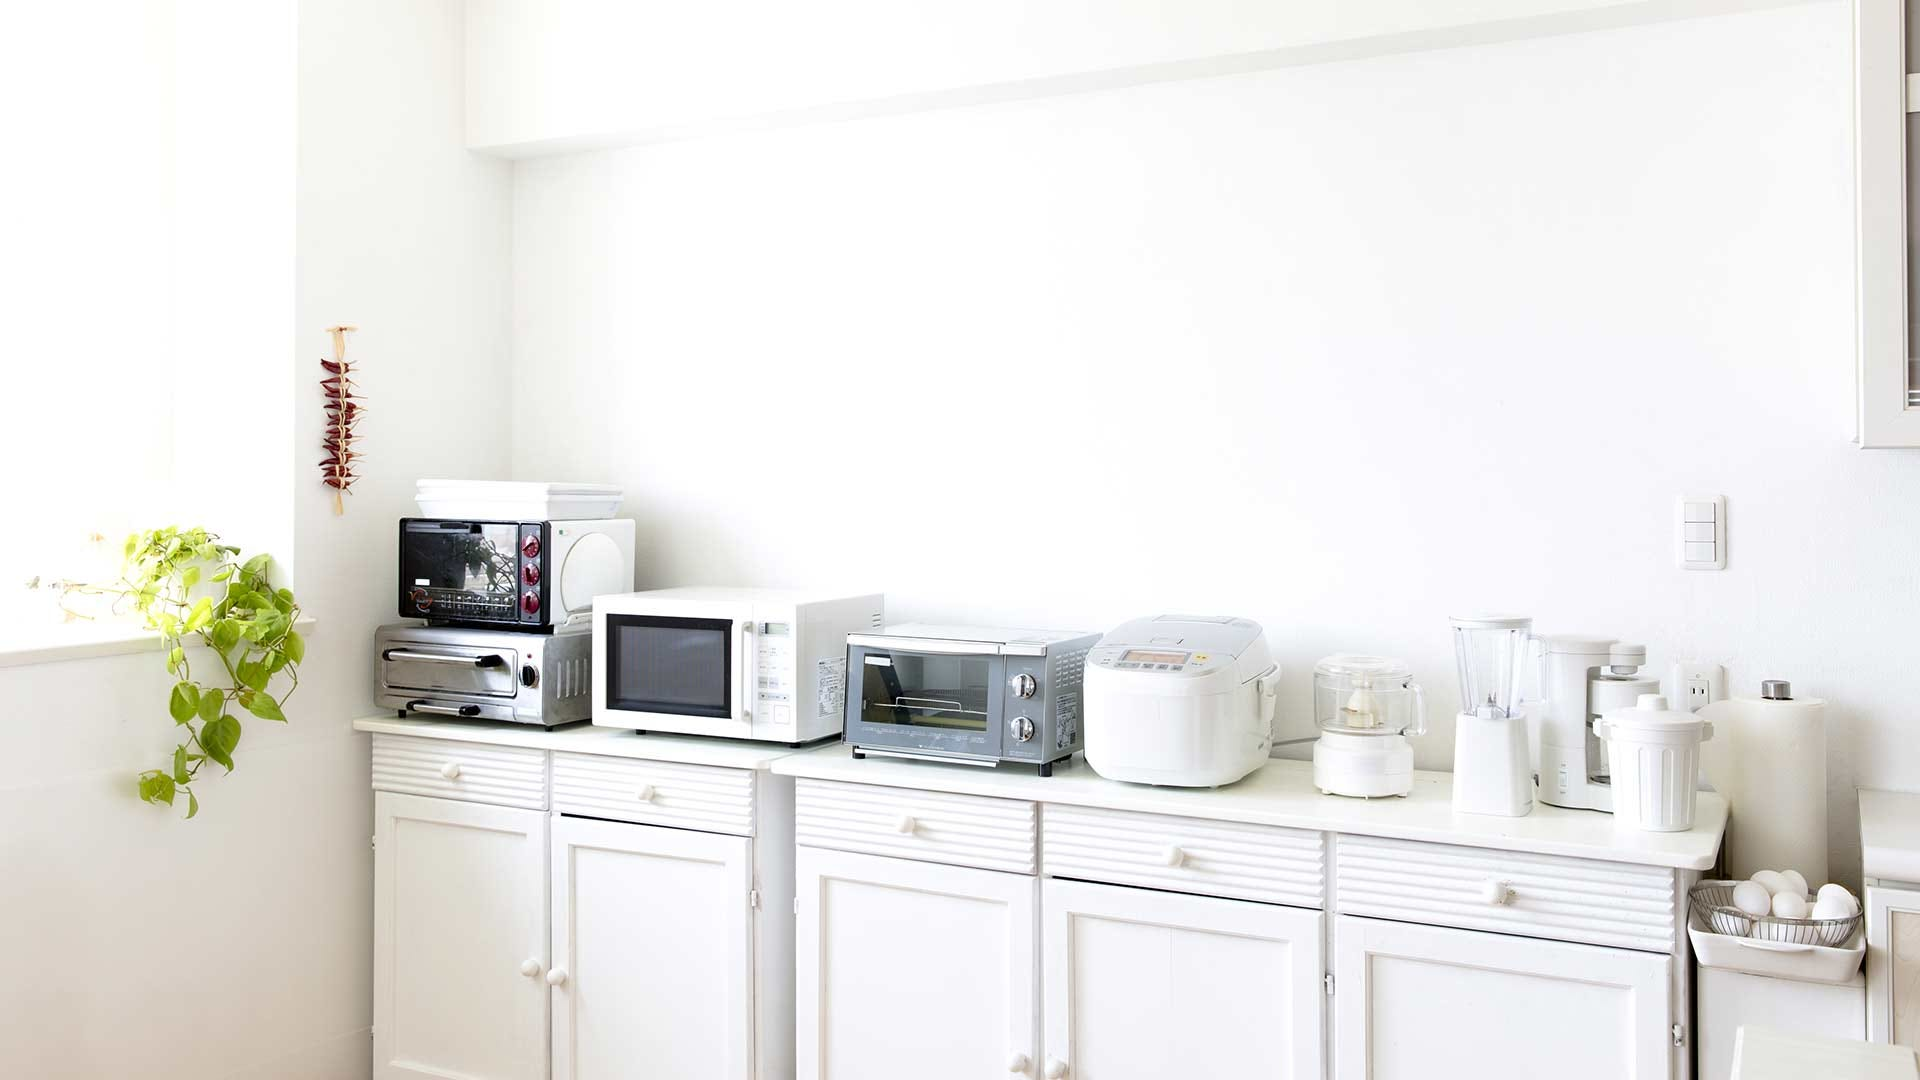 A brightly lit white kitchen with counterspace covered in kitchen appliances.